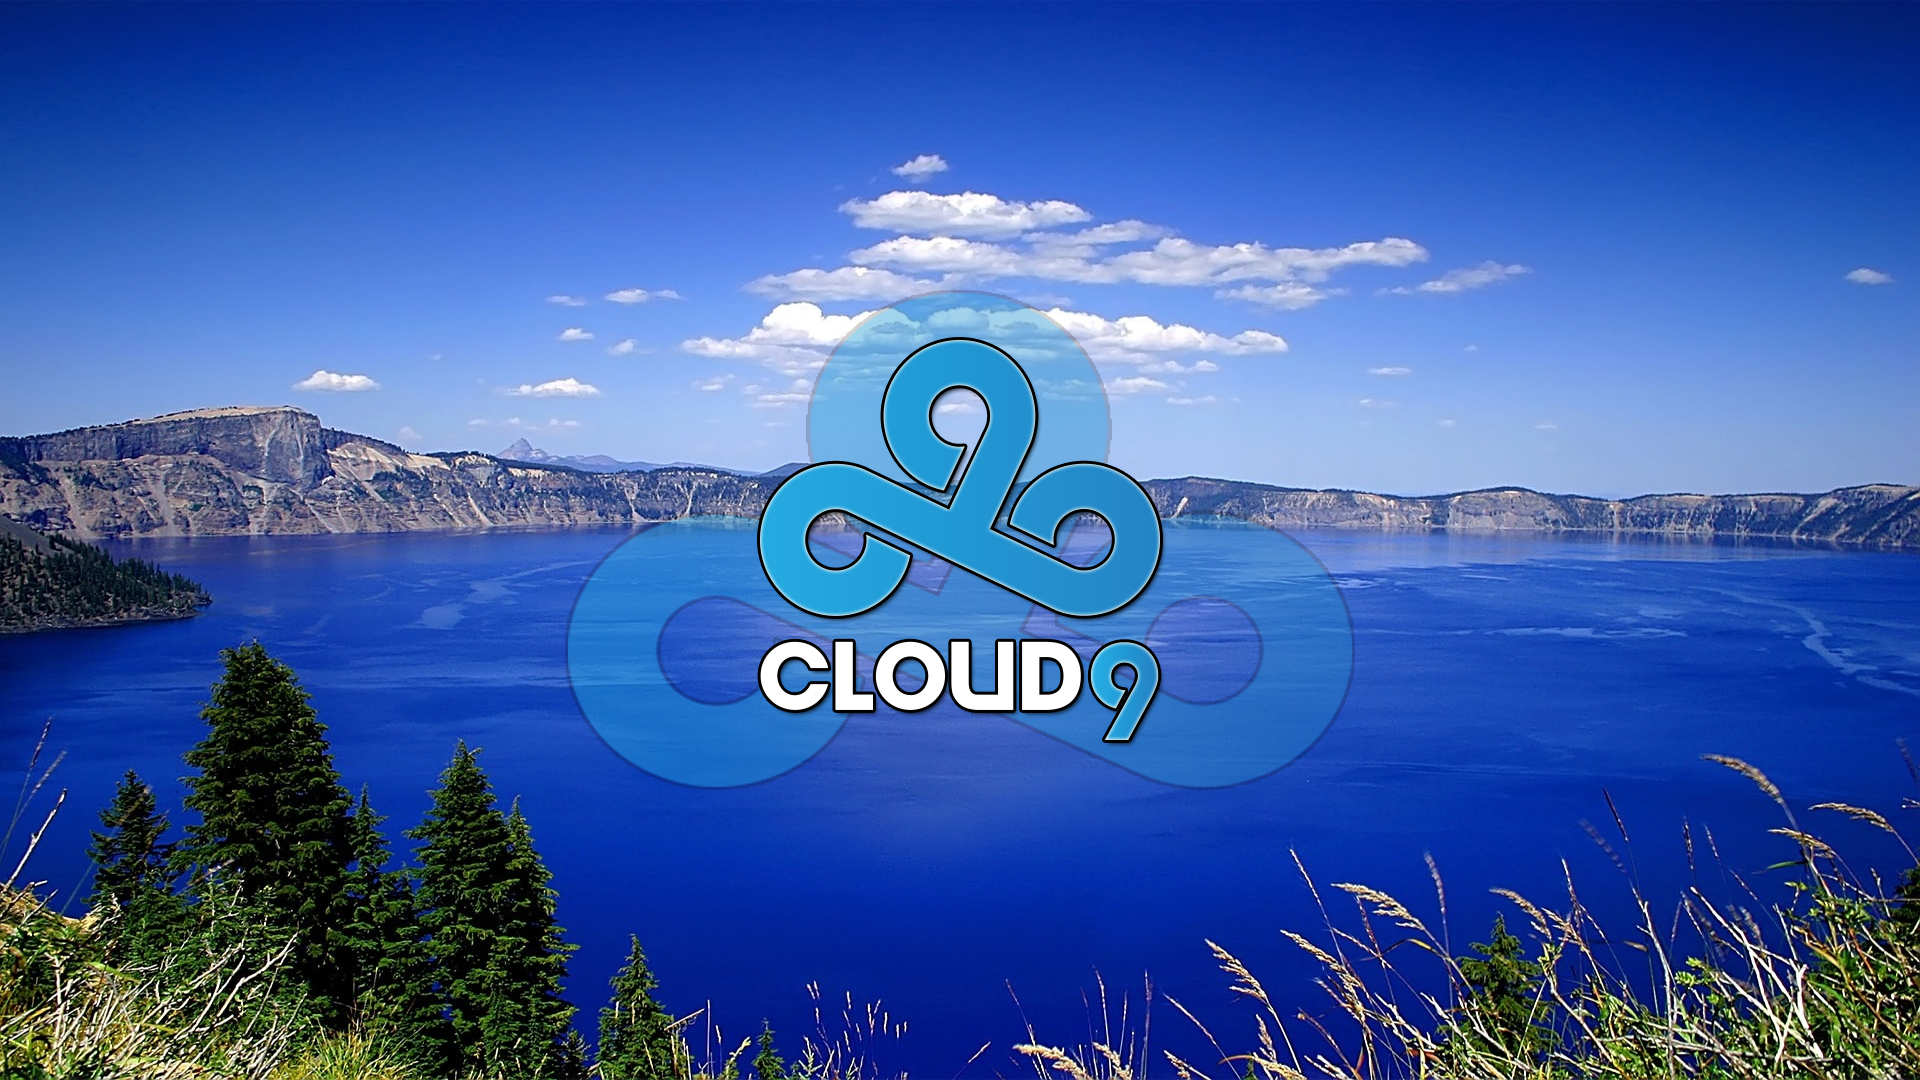 Cloud 9 Reflection